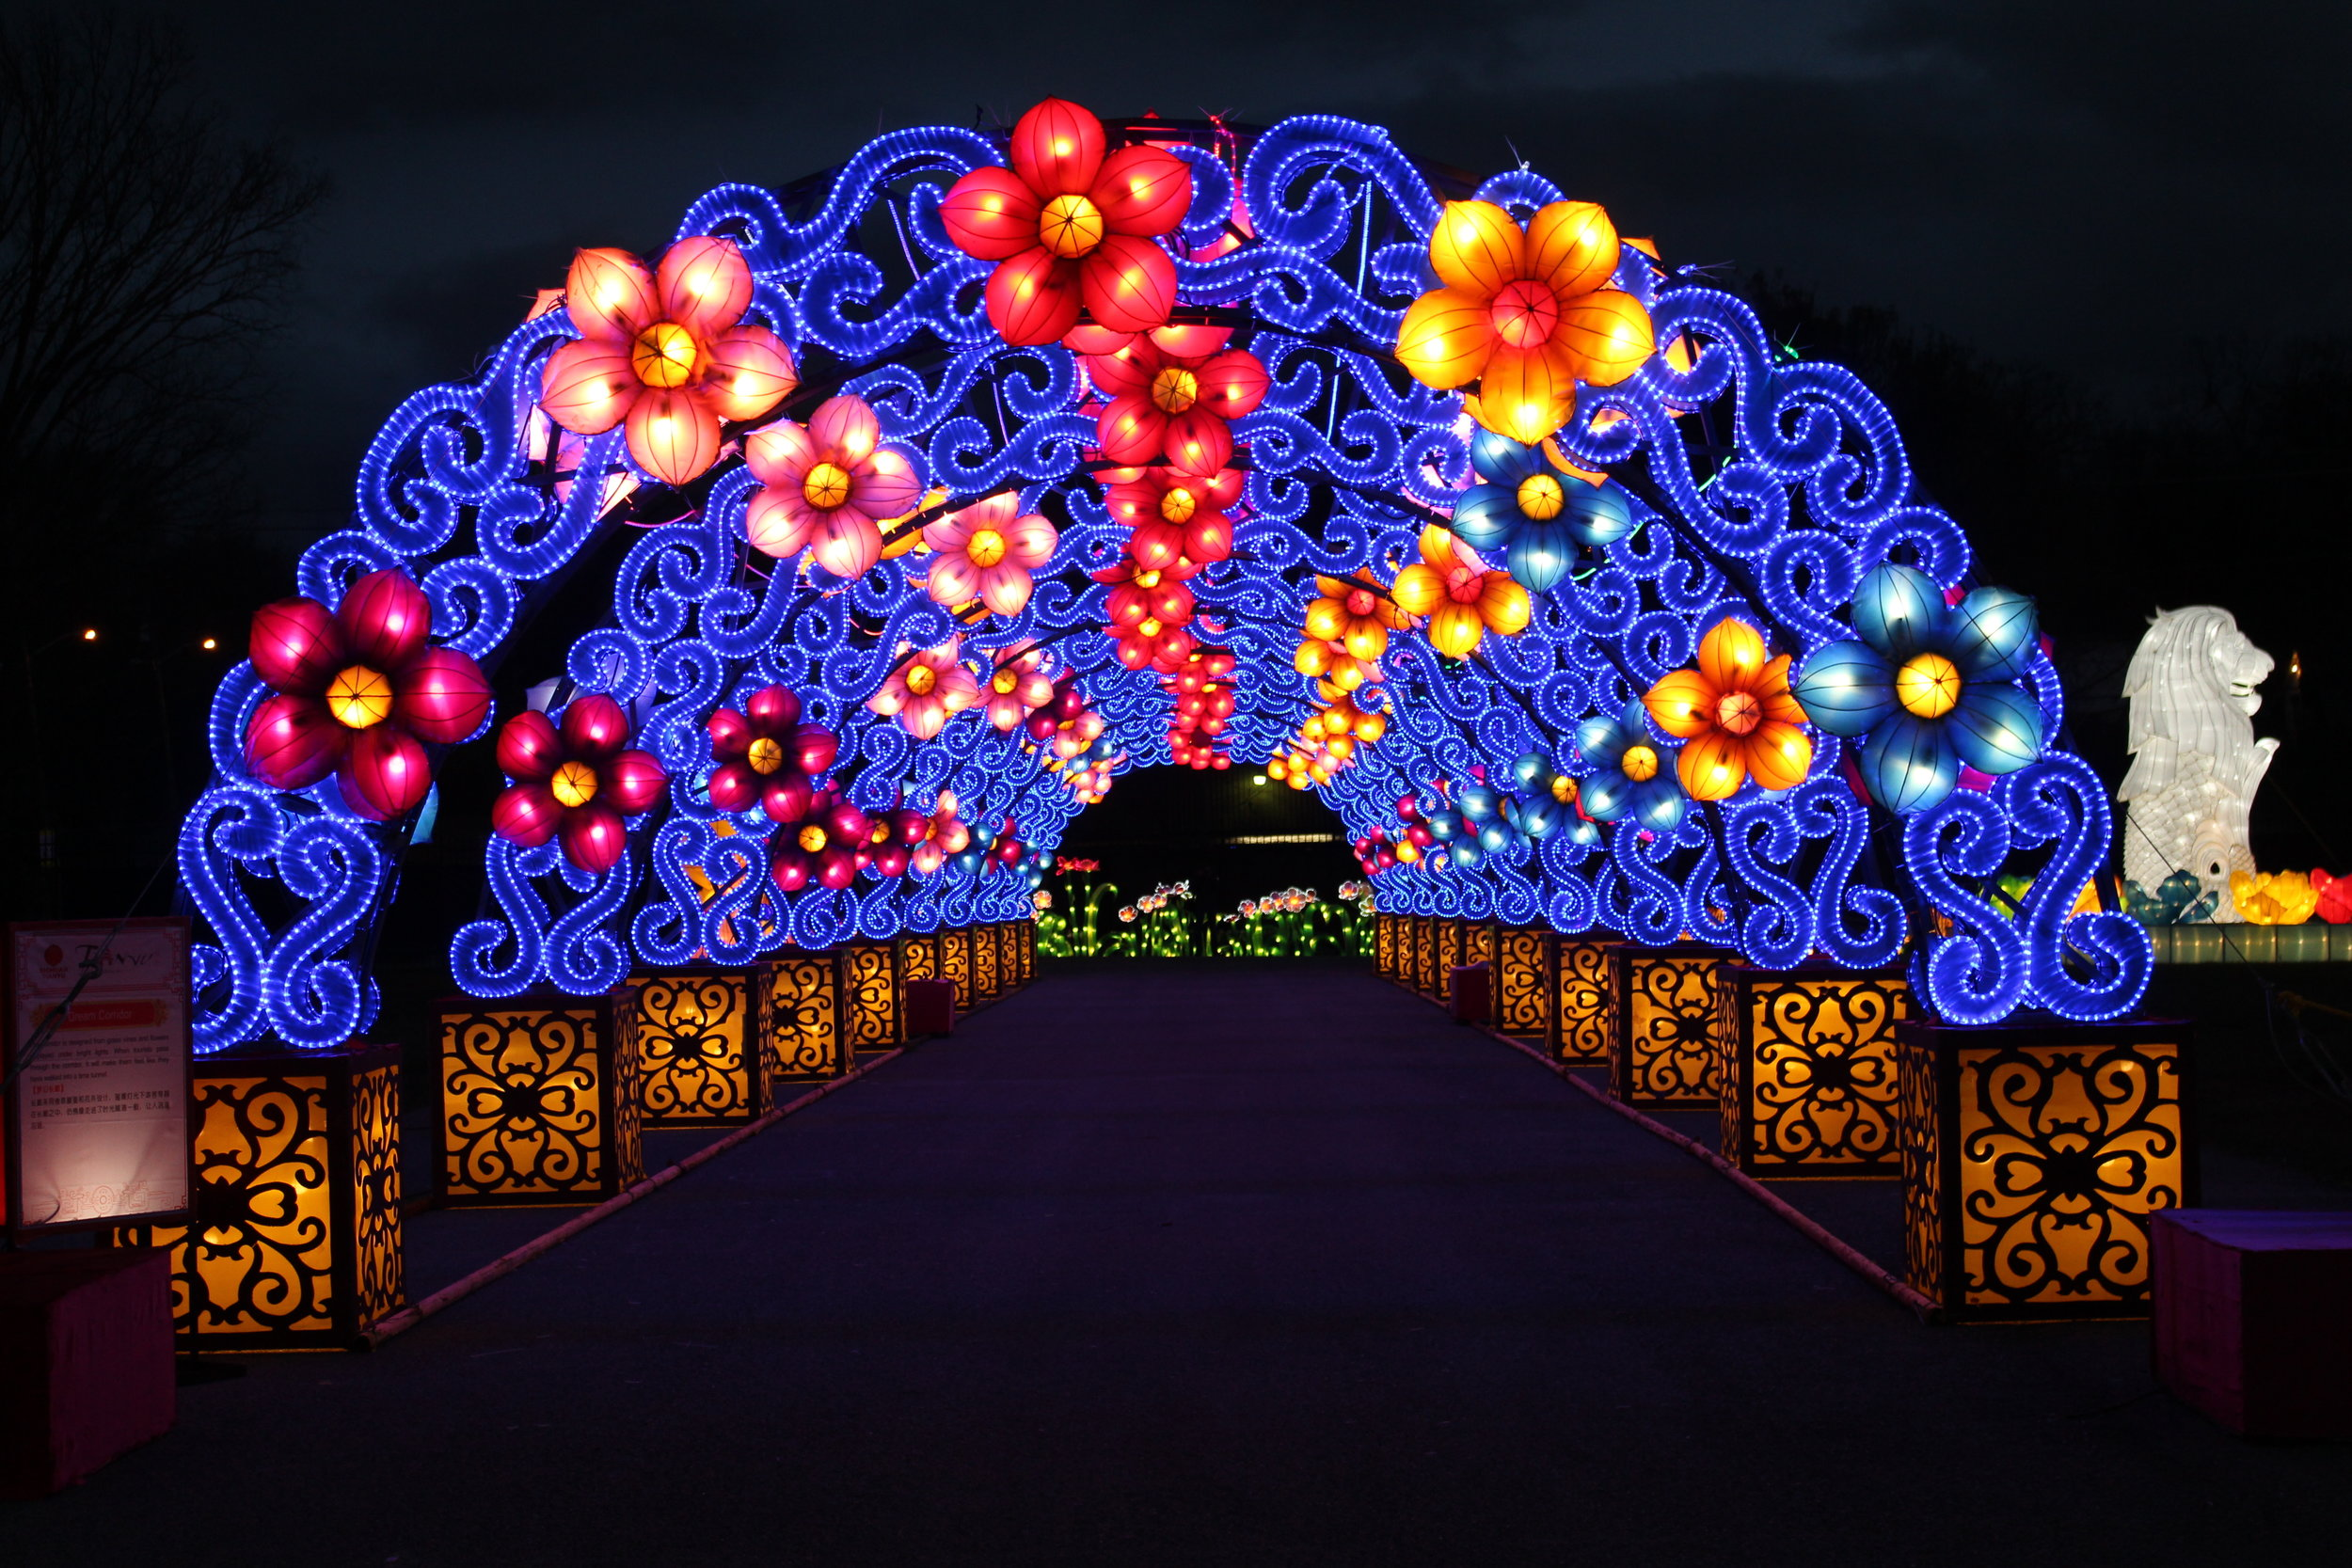 The festival features many lighted tunnels adorned with beautiful lights.